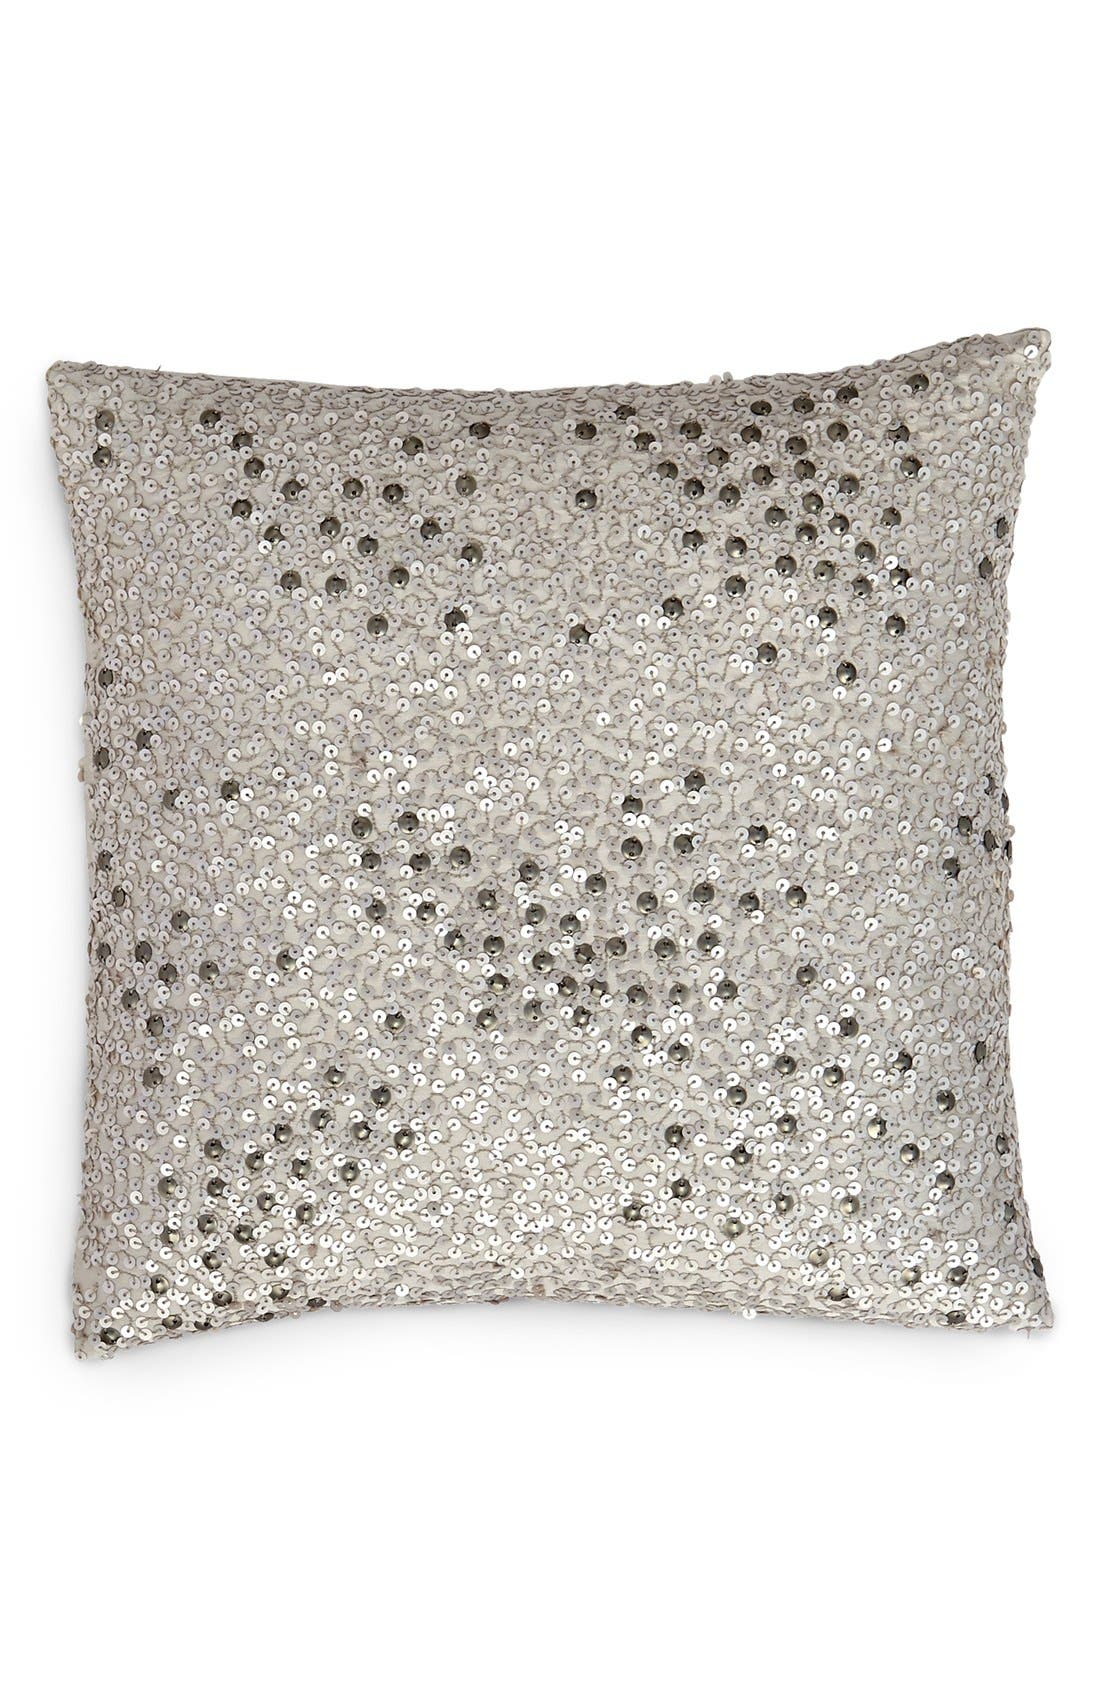 Alternate Image 1 Selected - Donna Karan Collection 'Reflection' Sequin Pillow (Online Only)